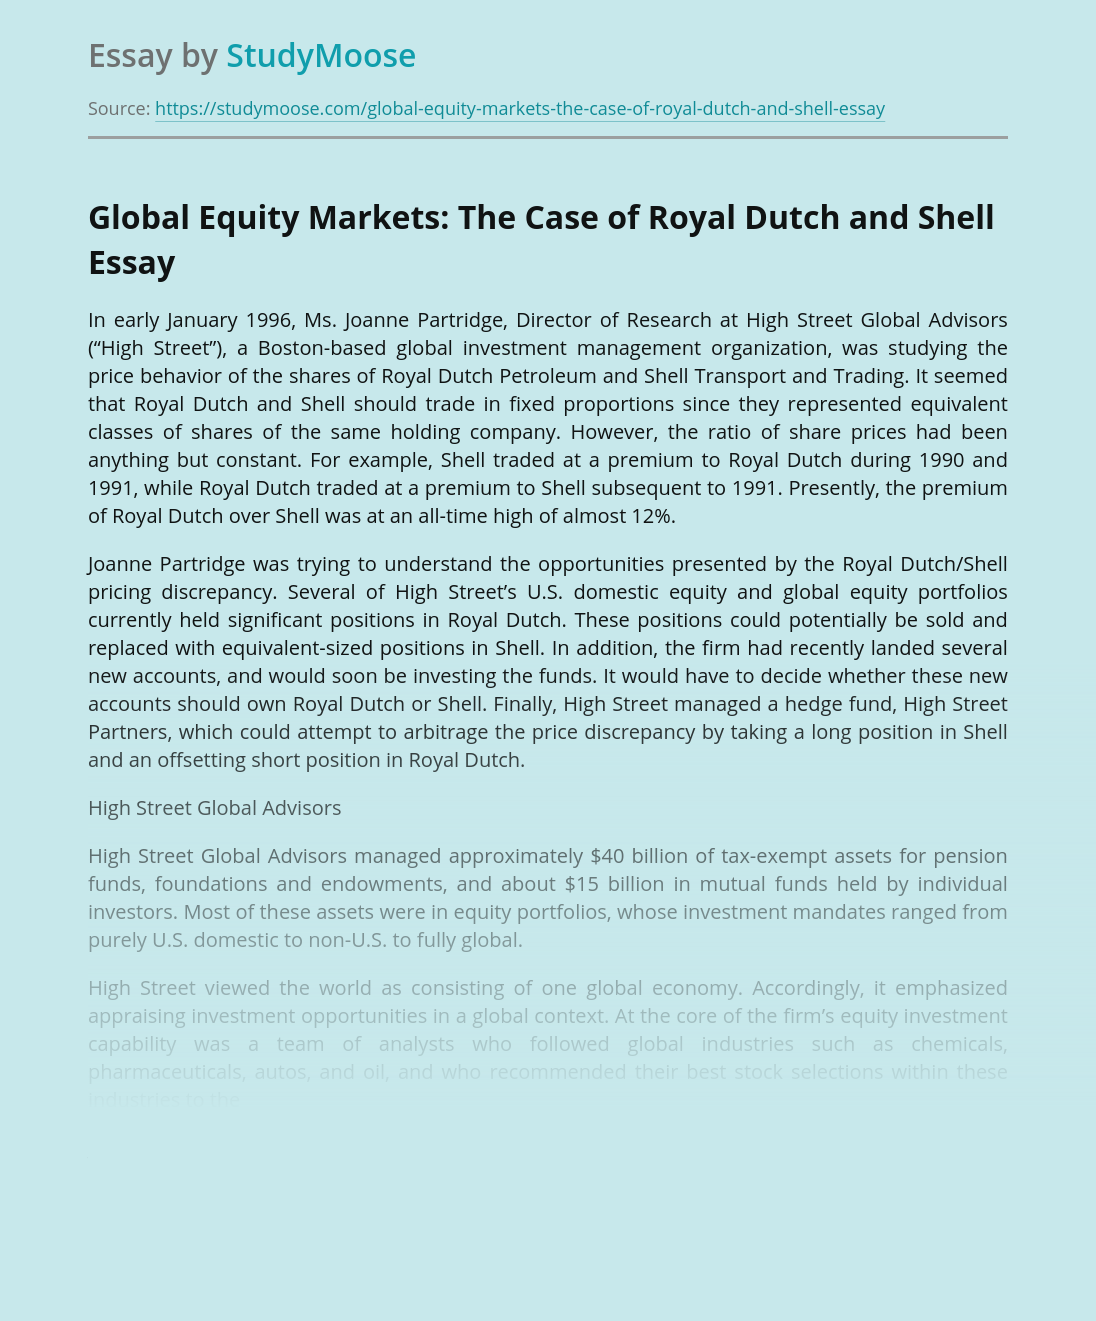 Global Equity Markets: The Case of Royal Dutch and Shell